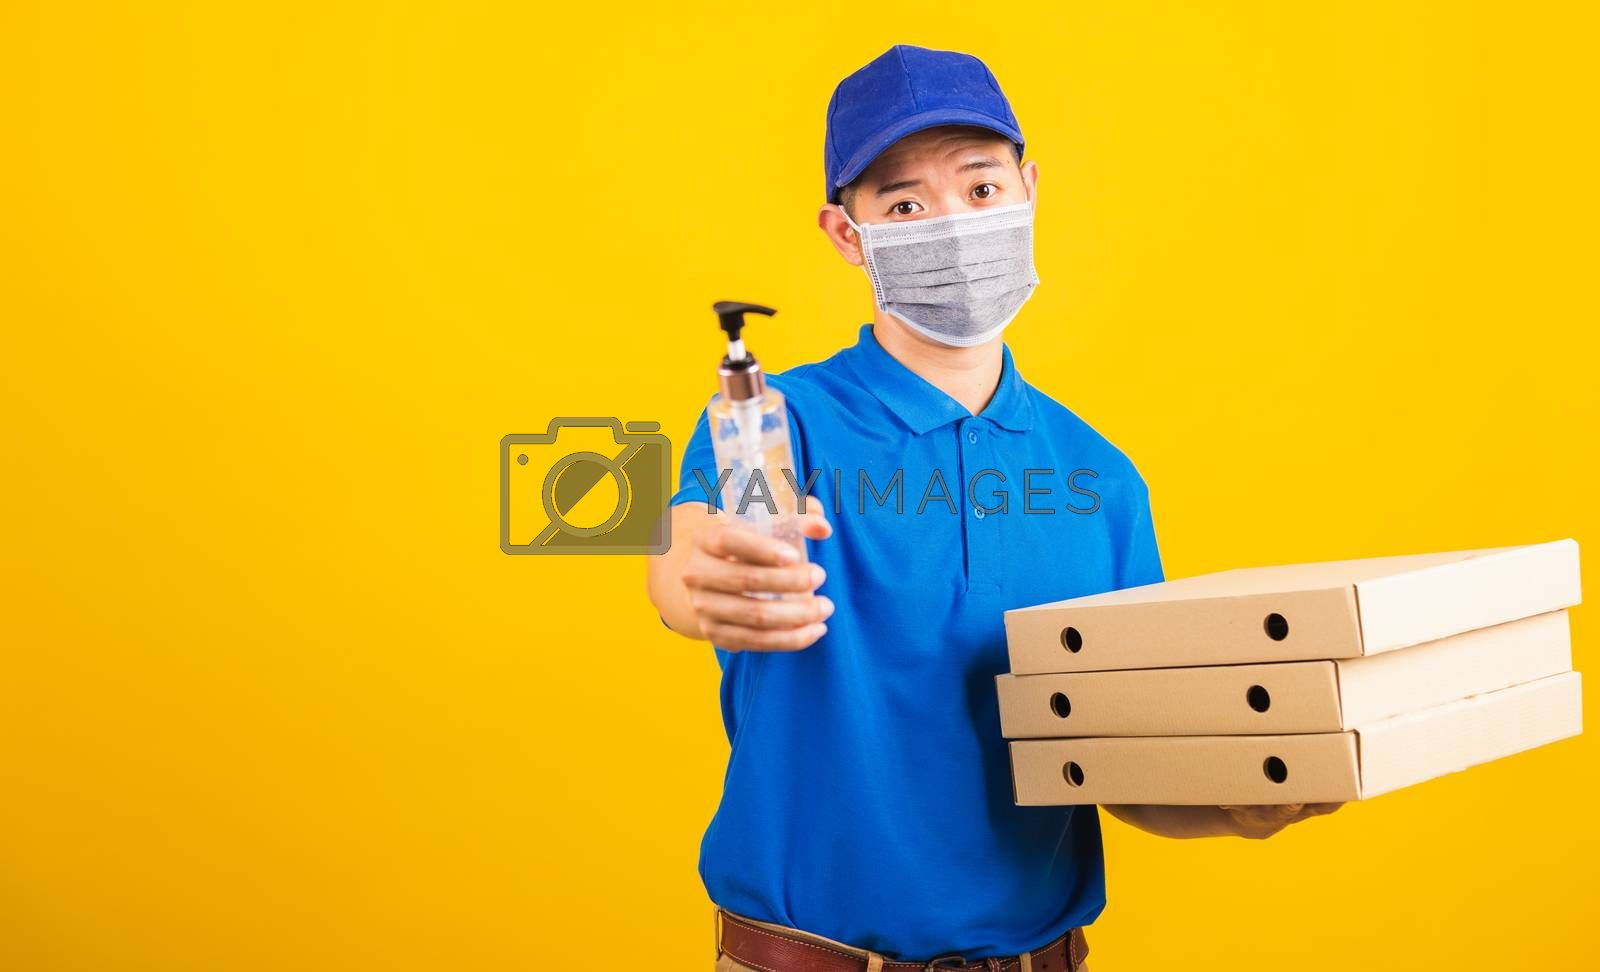 Asian young handsome delivery man wearing face mask protective germ virus holding alcohol sanitizing gel and boxes on hand, studio shot isolated on yellow background, outbreak coronavirus COVID-19